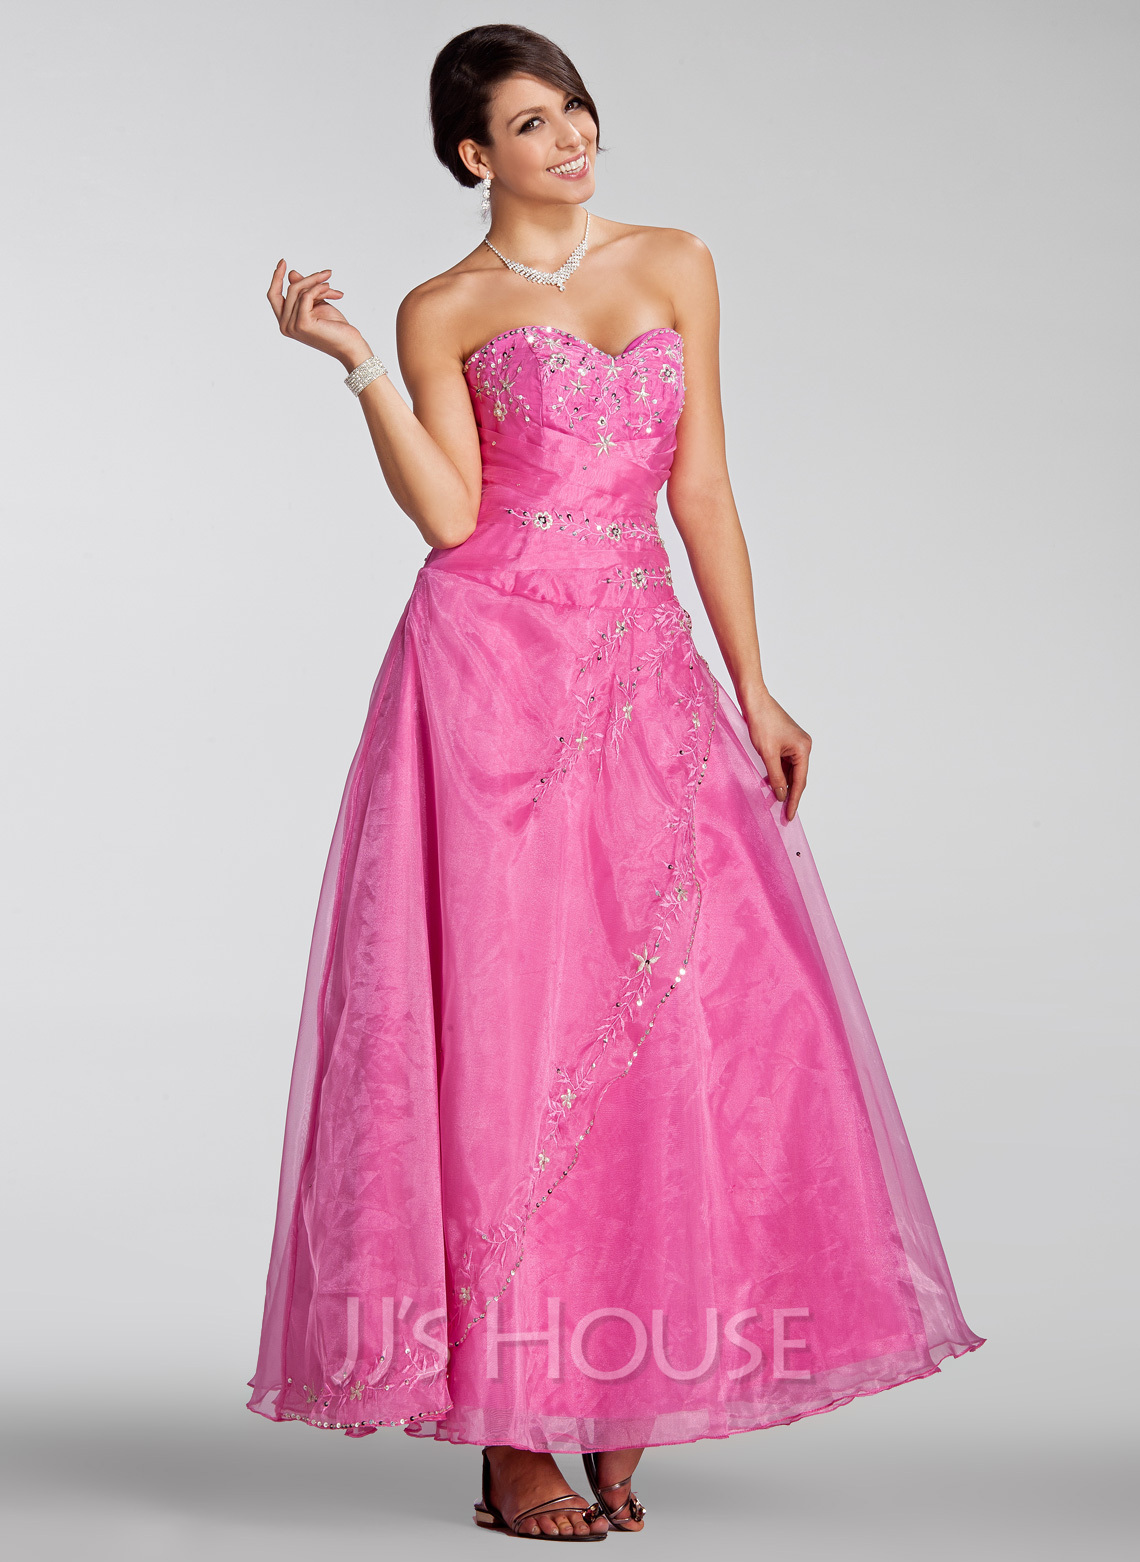 9d6f026d9a A-Line Princess Sweetheart Ankle-Length Organza Quinceanera Dress With  Embroidered Beading Sequins. Loading zoom